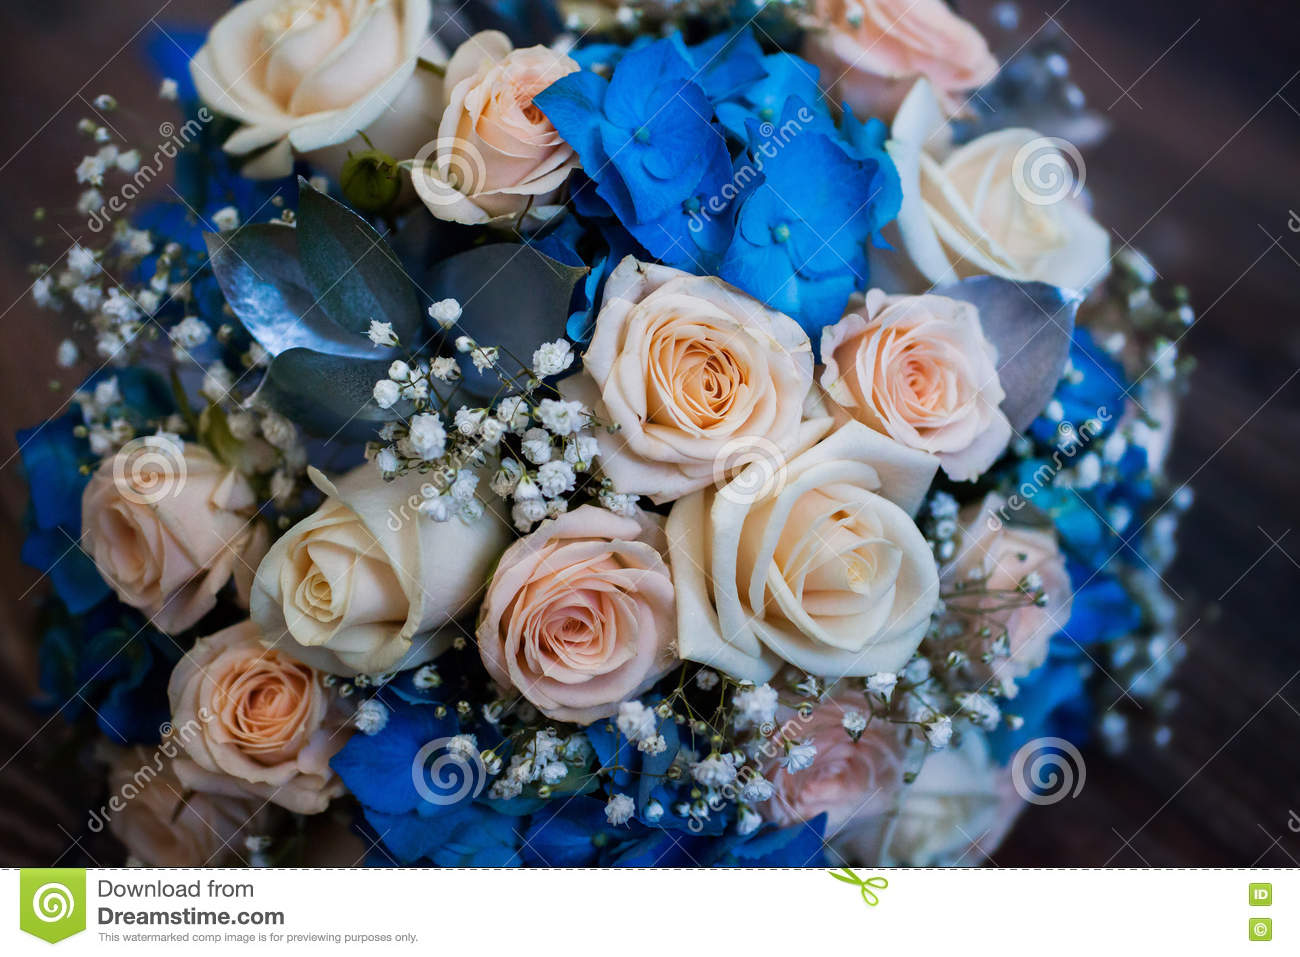 Wedding Flowers Bouquet Of Pink Roses And Blue Flowers Stock Image